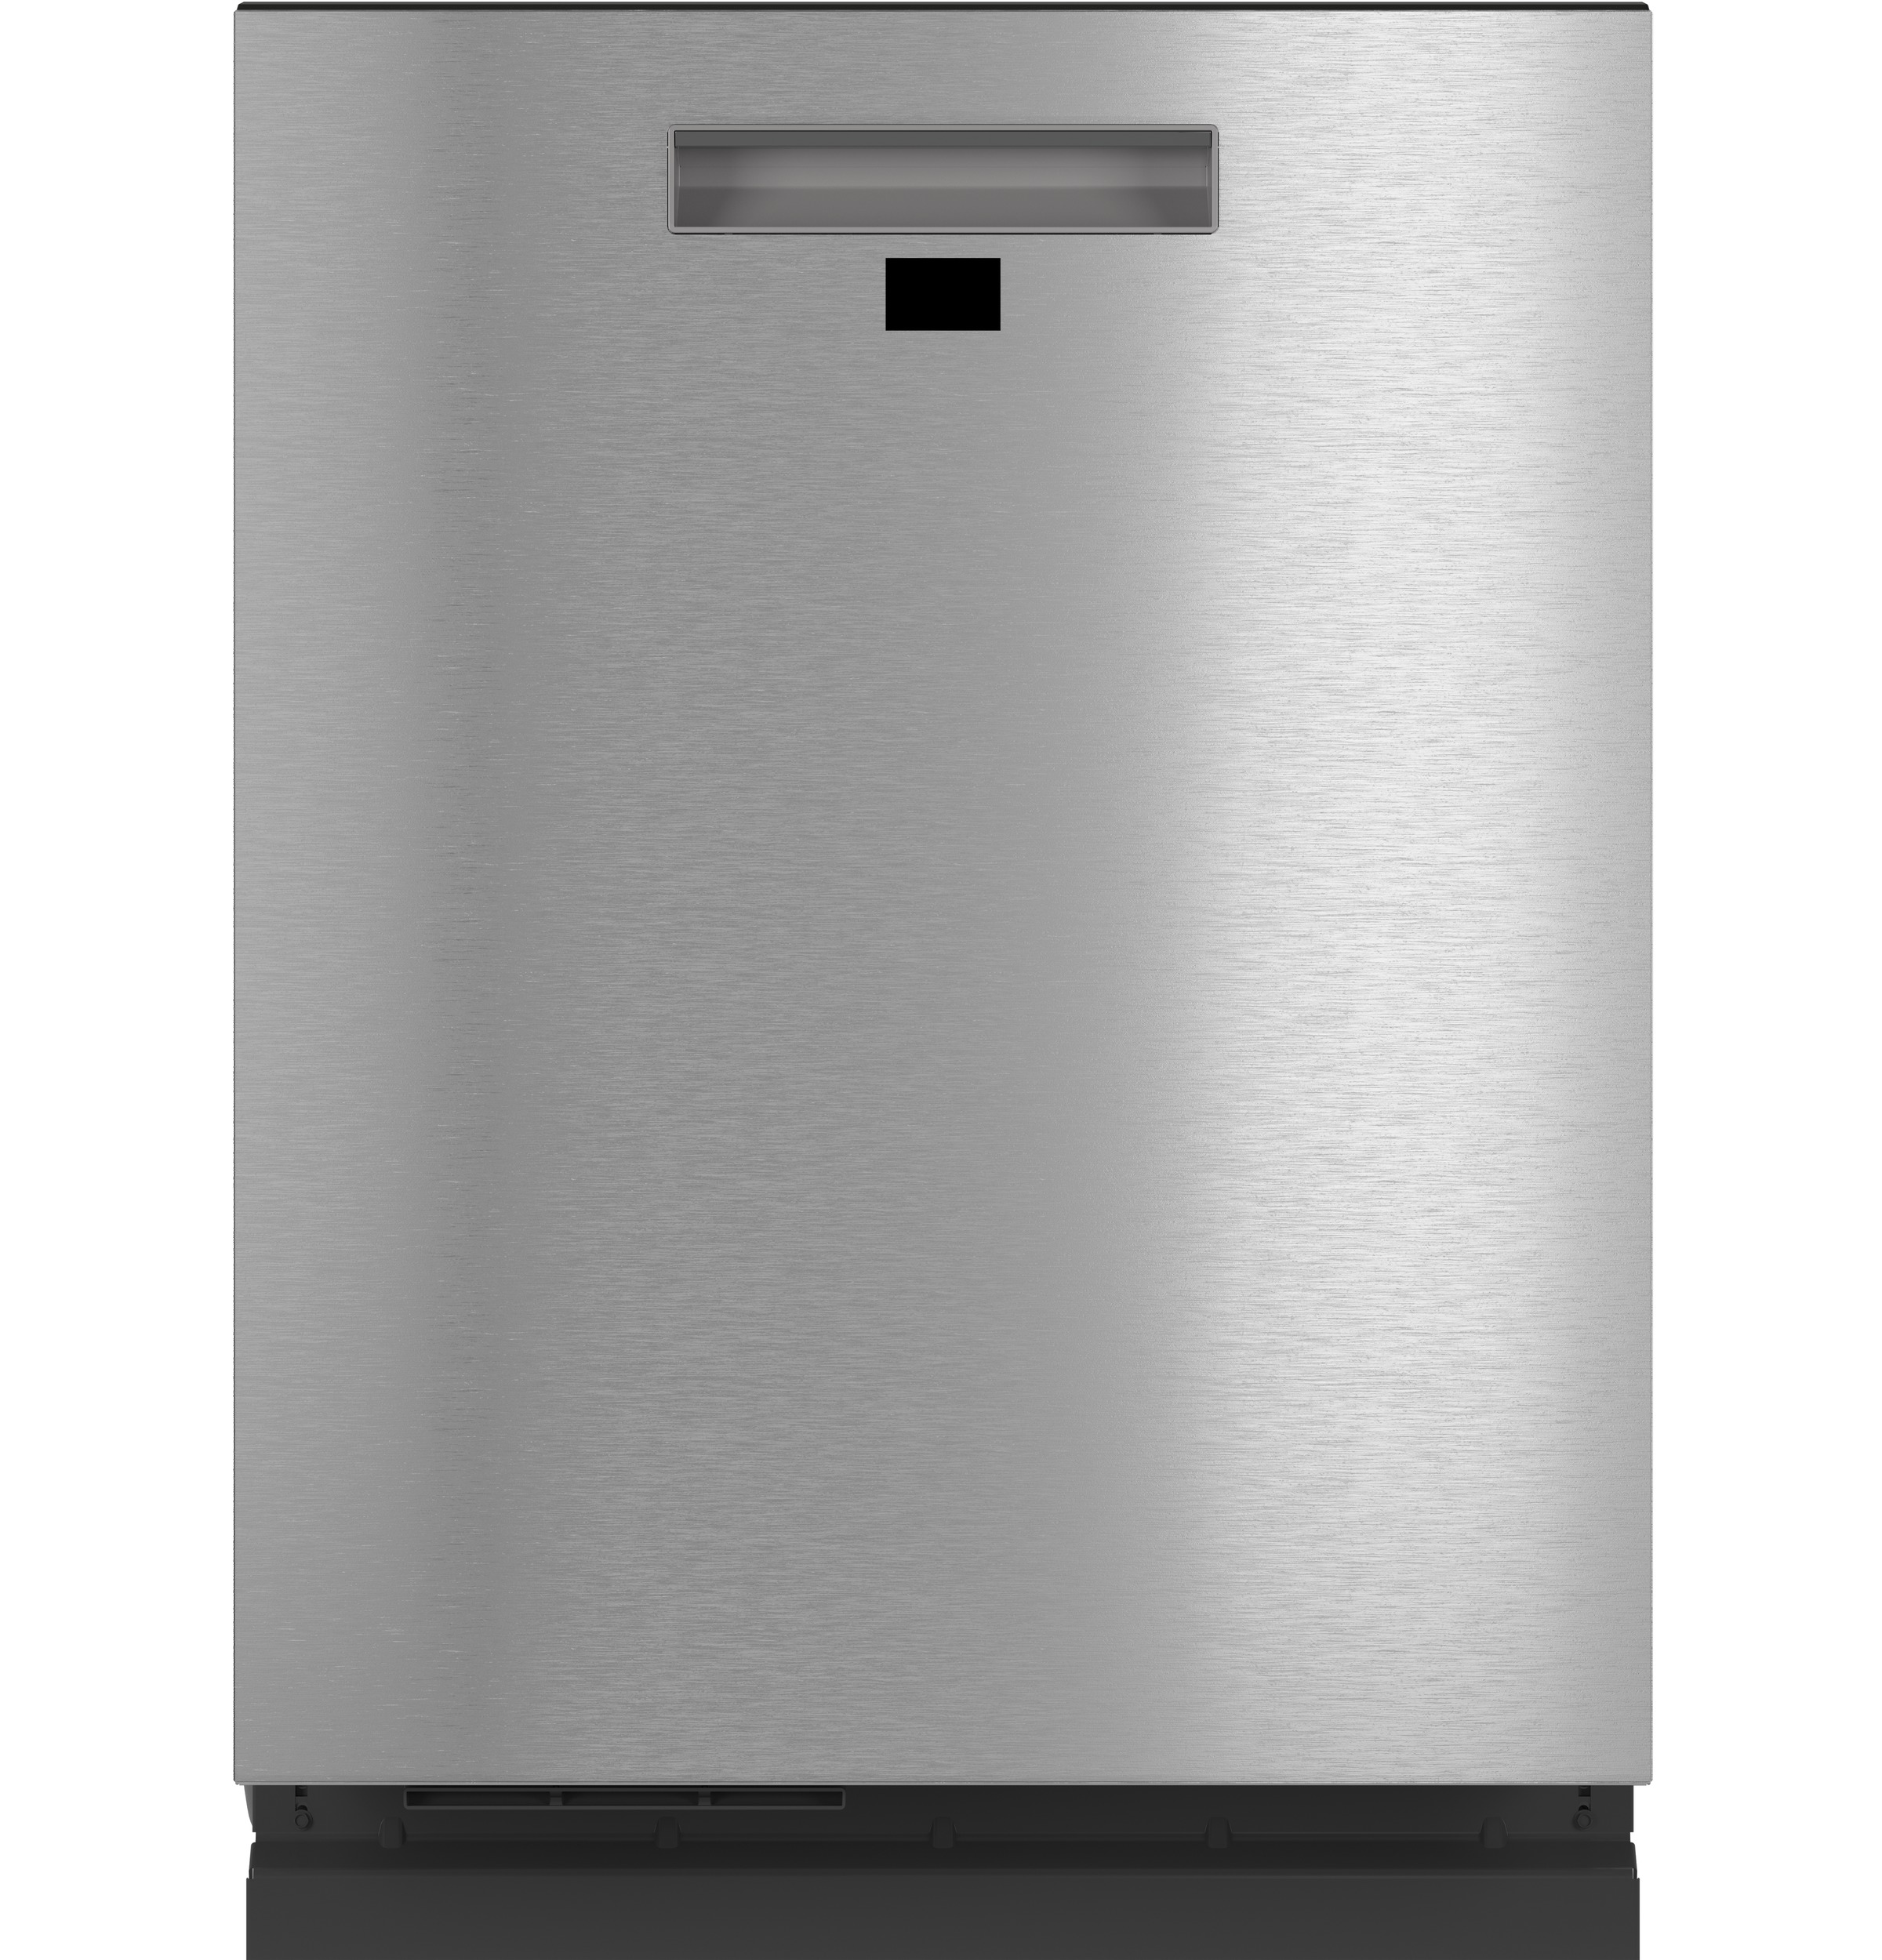 Cafe Café™ Smart Stainless Steel Interior Dishwasher with Sanitize and Ultra Wash & Dual Convection Ultra Dry in Platinum Glass